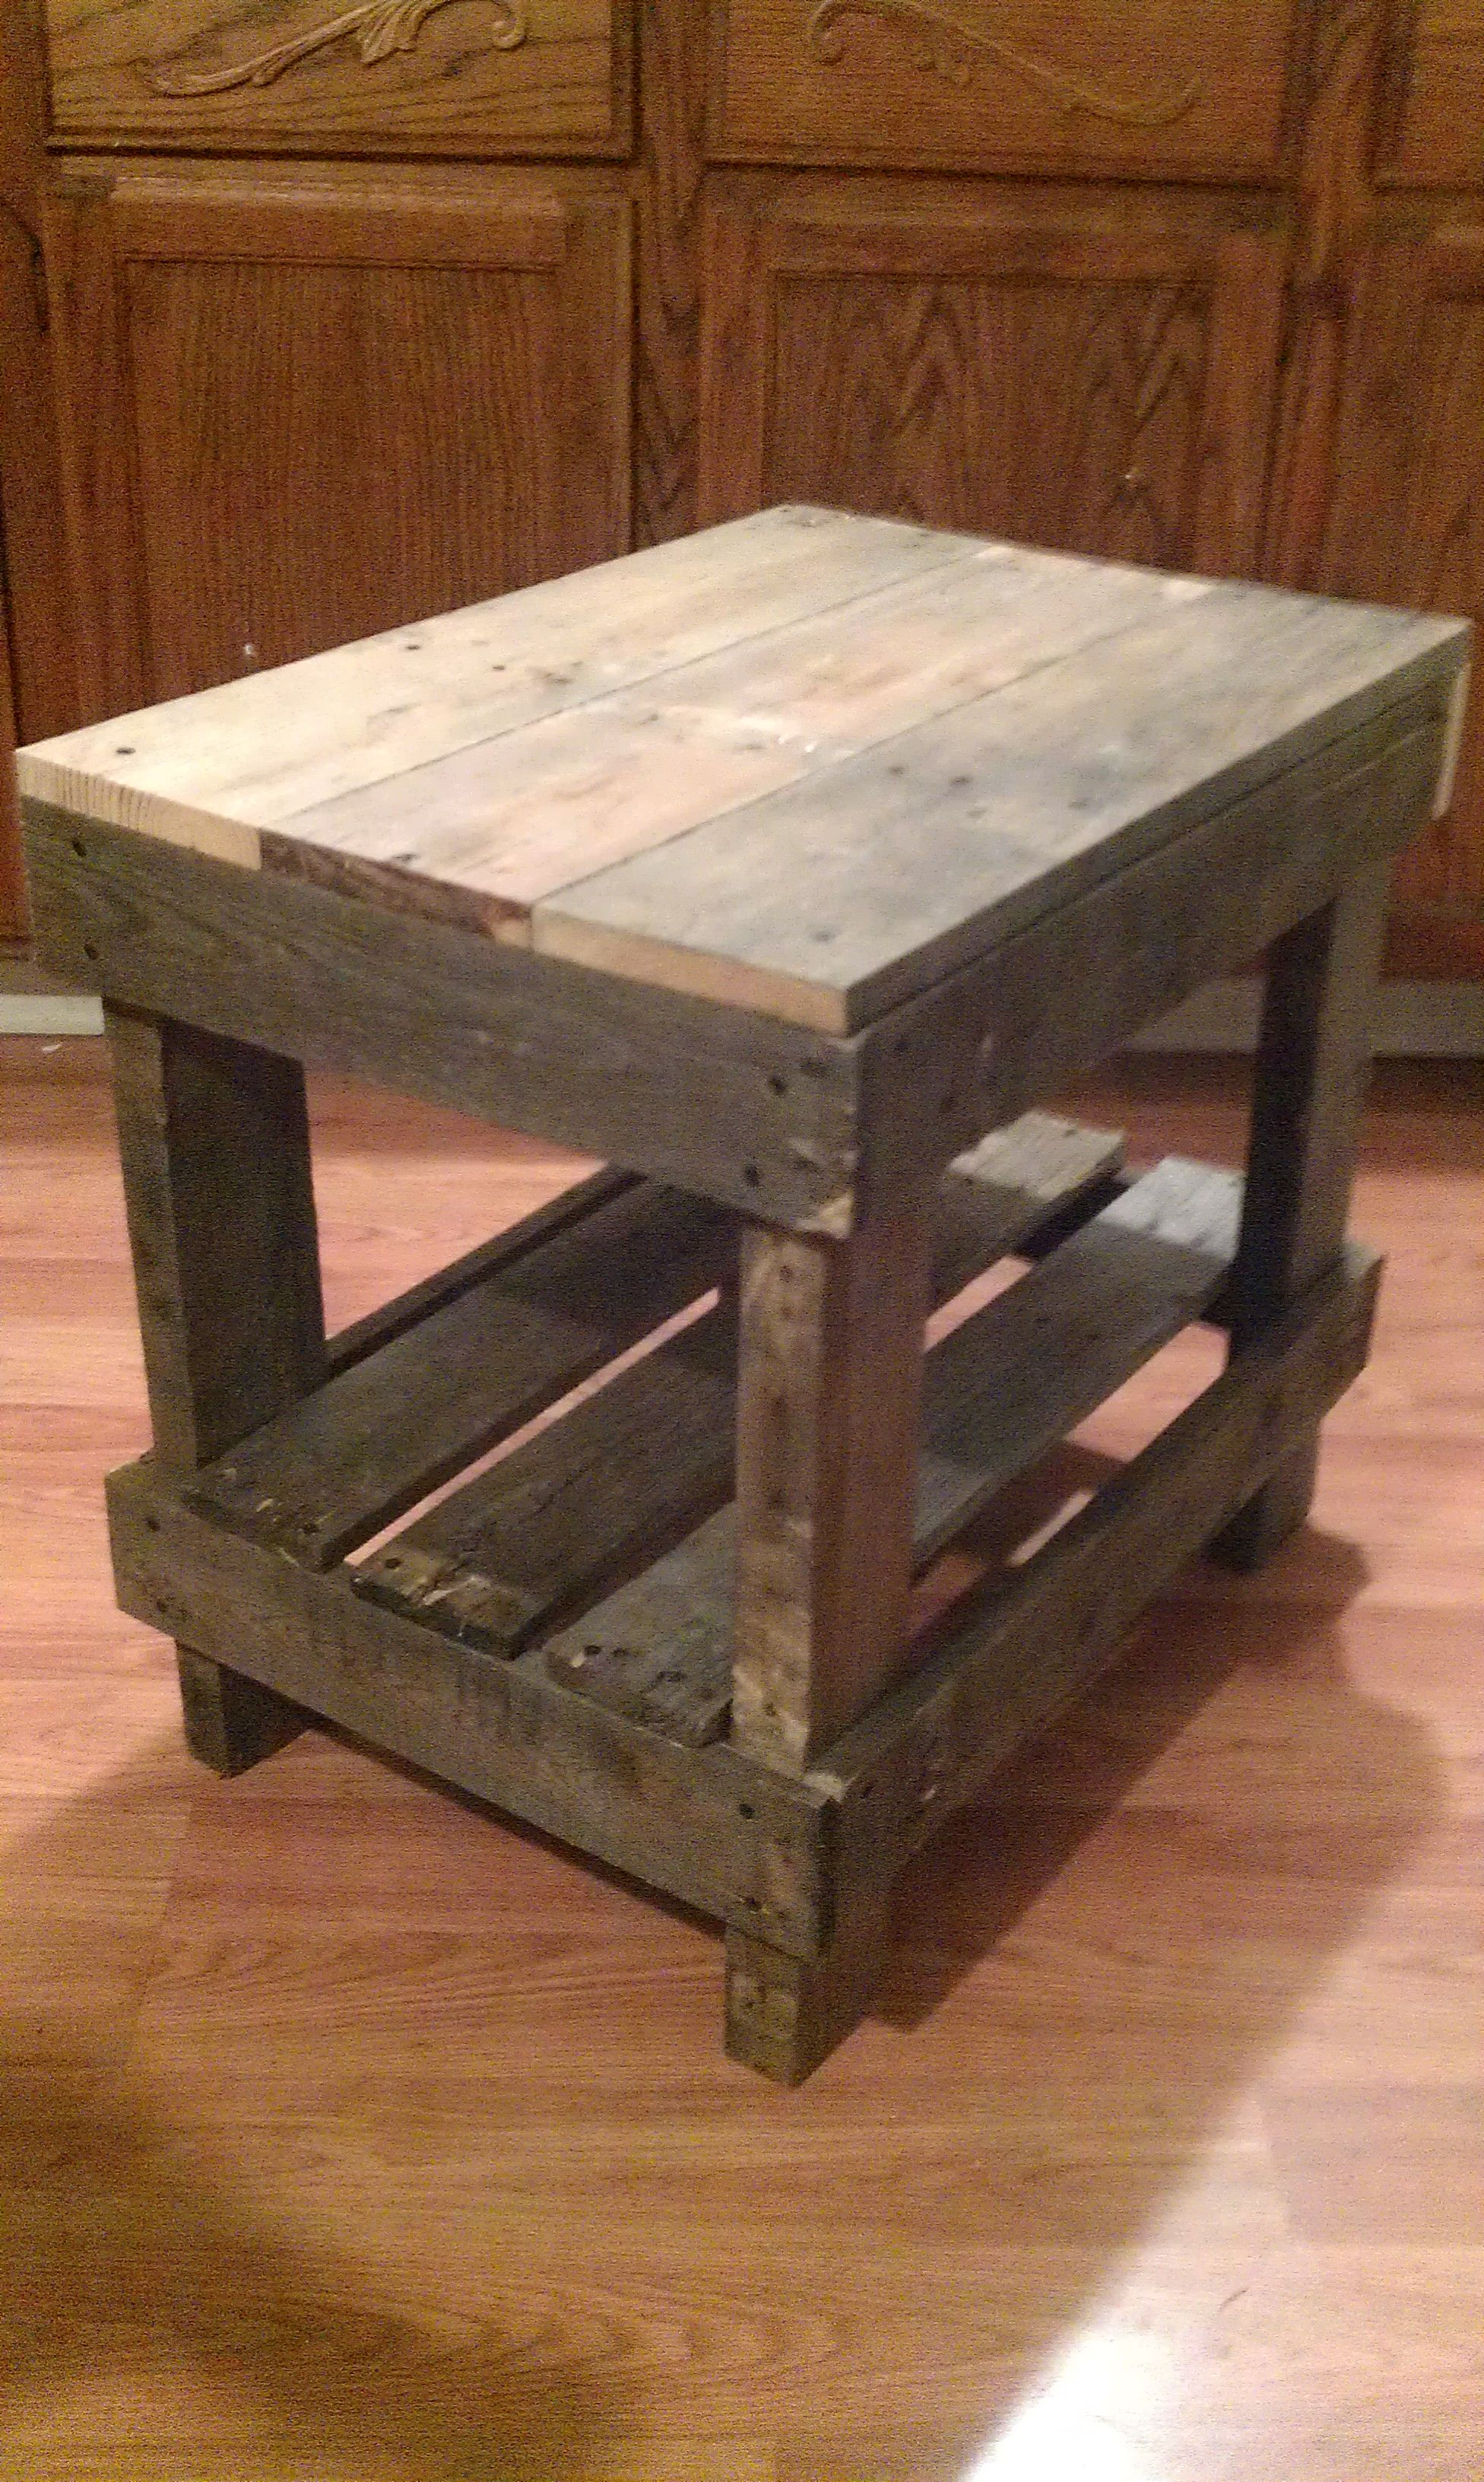 Diy End Tables Plans Pallet Wood End Table Pallet Diy Pinterest The End